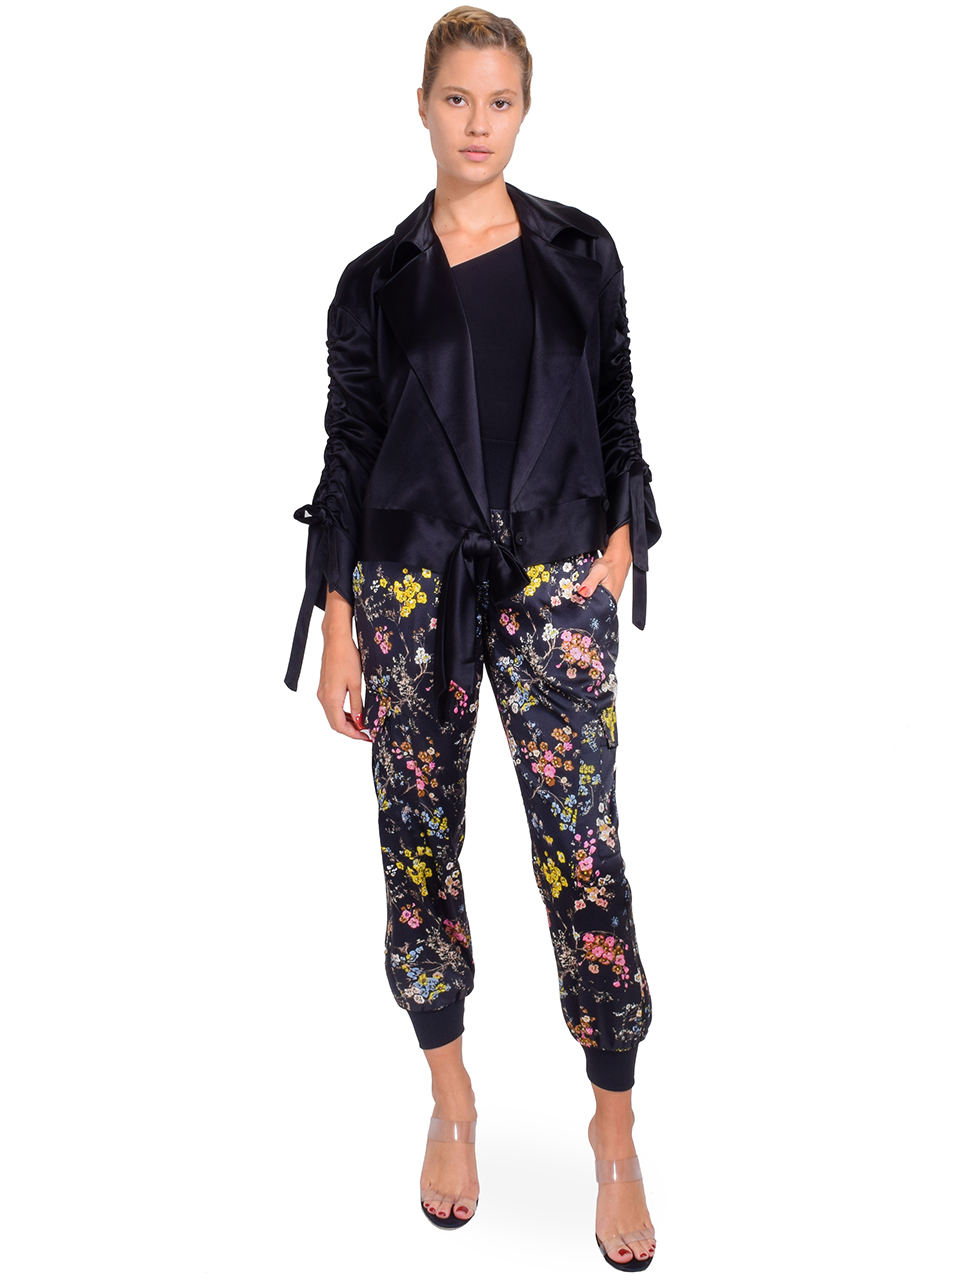 CINQ A SEPT Cropped Aziza Jacket in Black Full Outfit